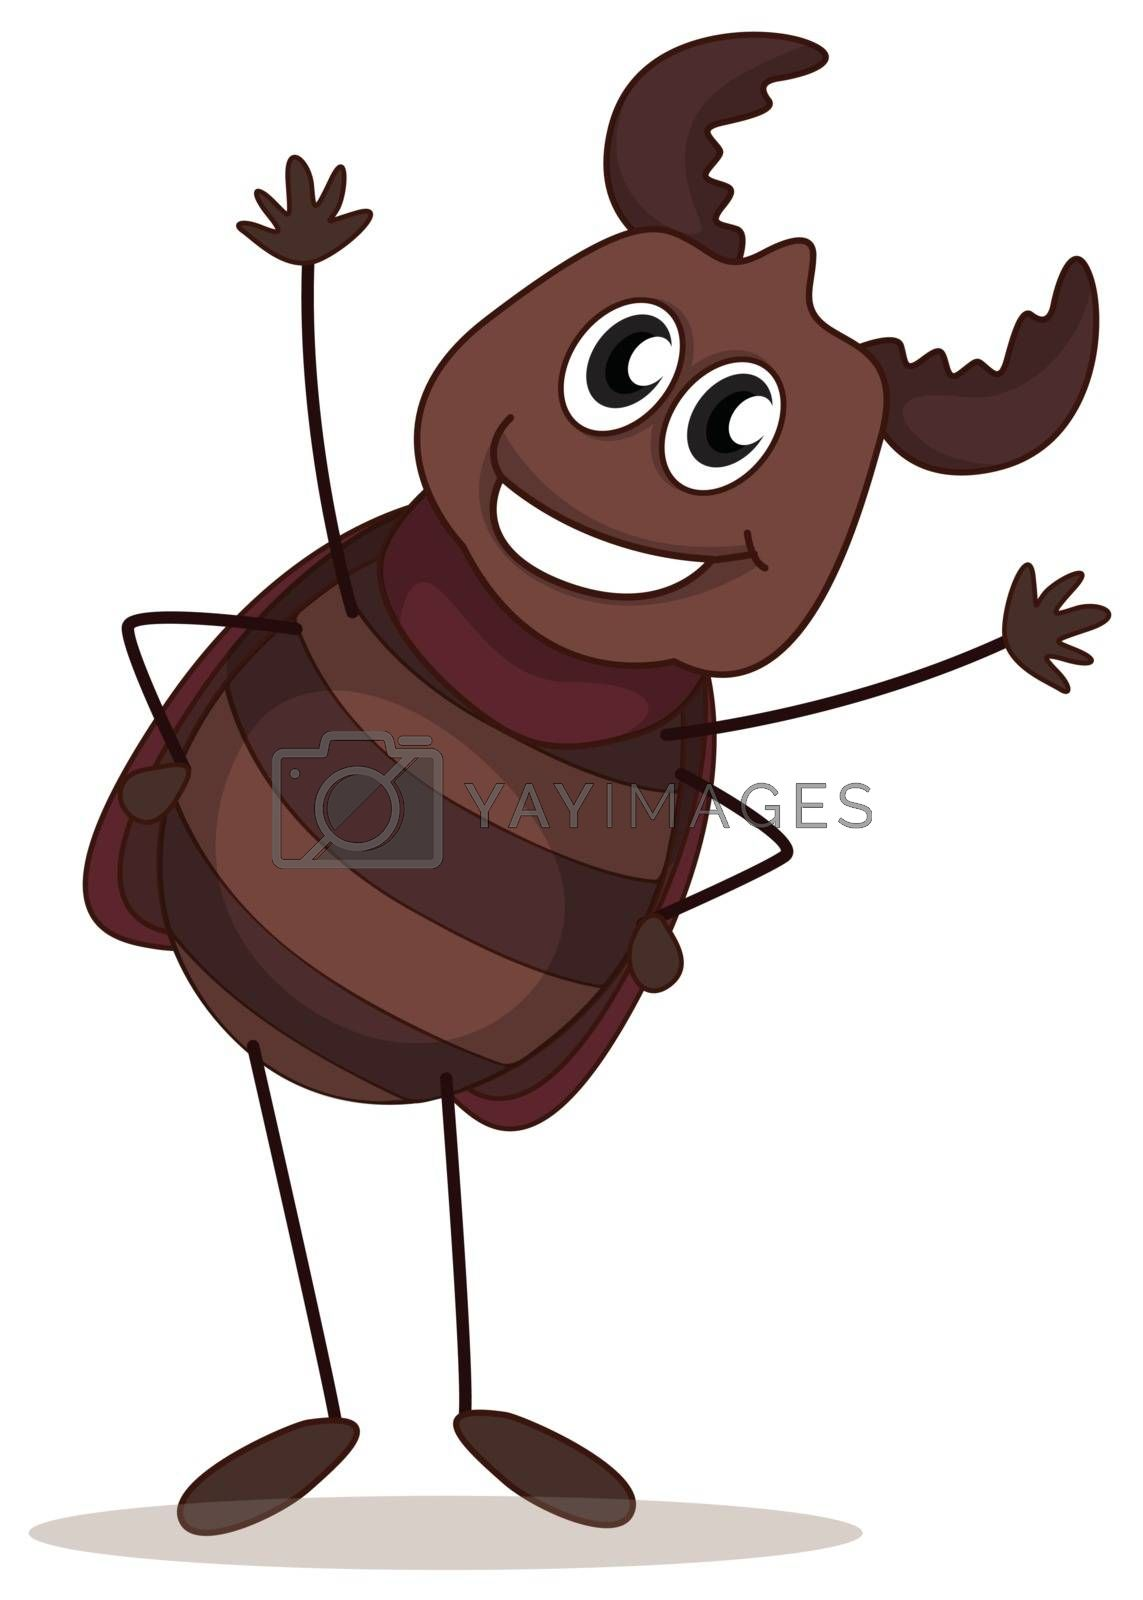 Illustration of a smiling beetle on a white background